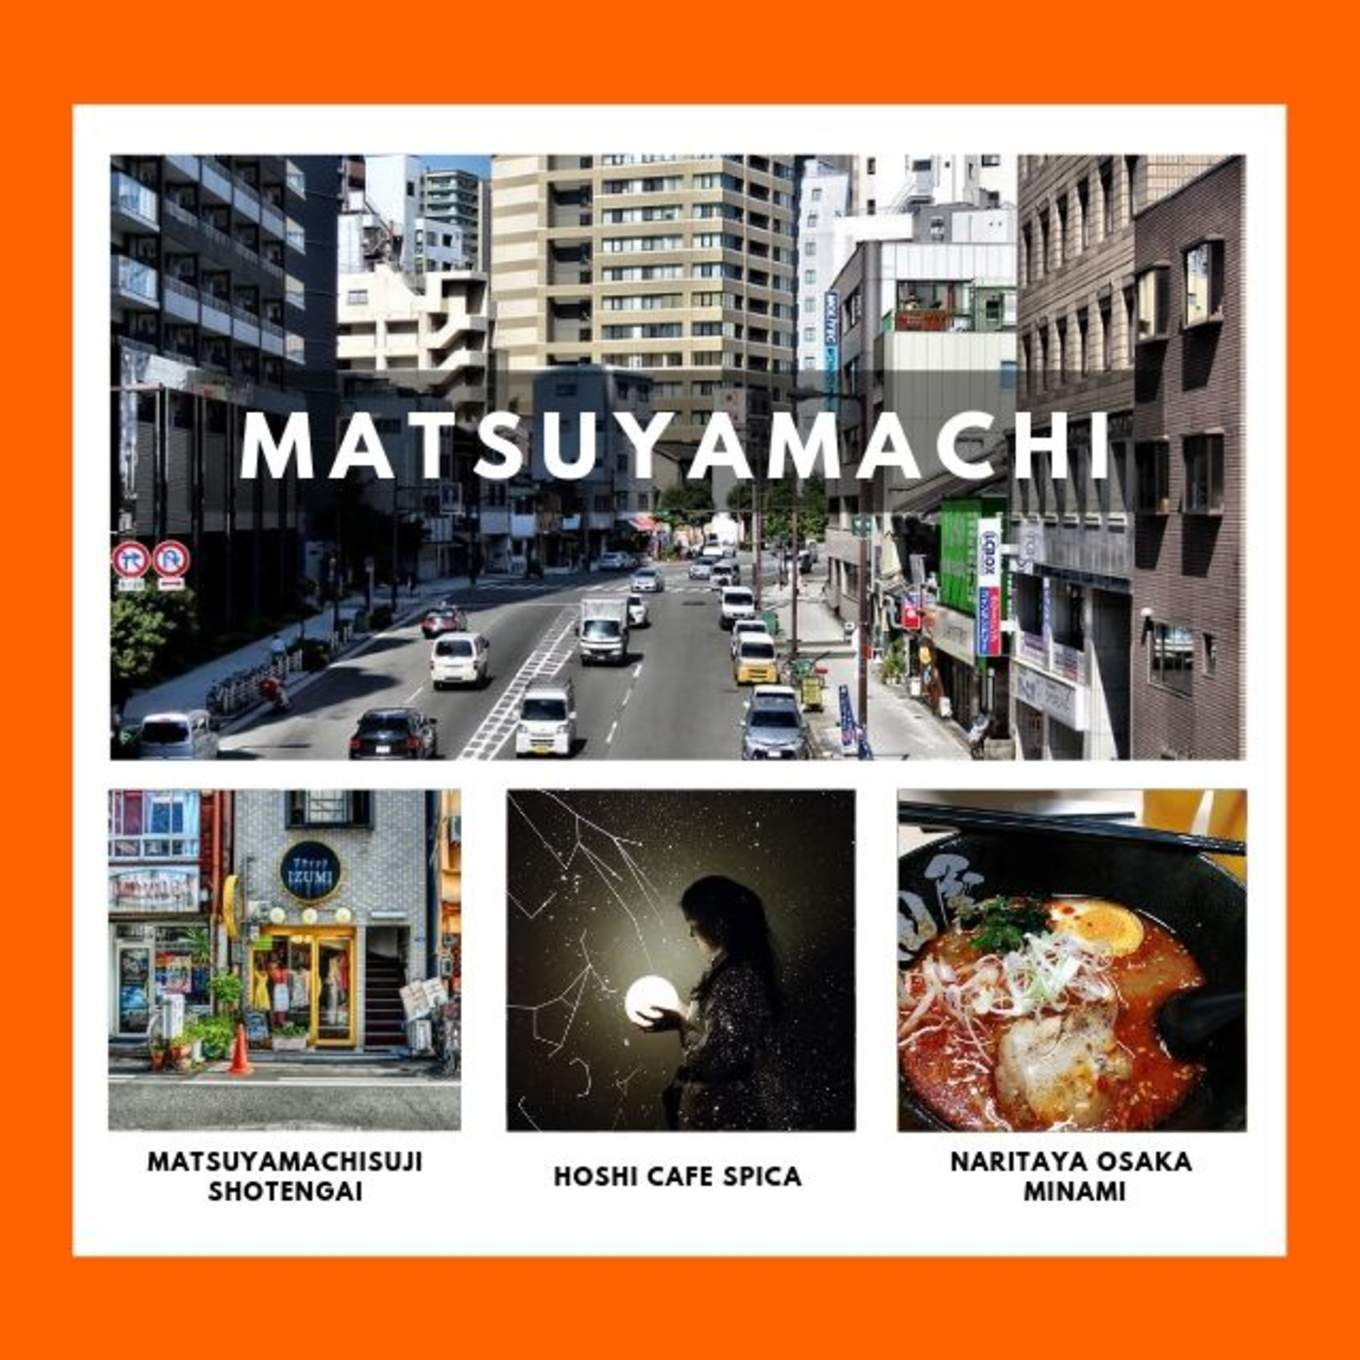 osaka-subway-guide-collage-matsuyamachi